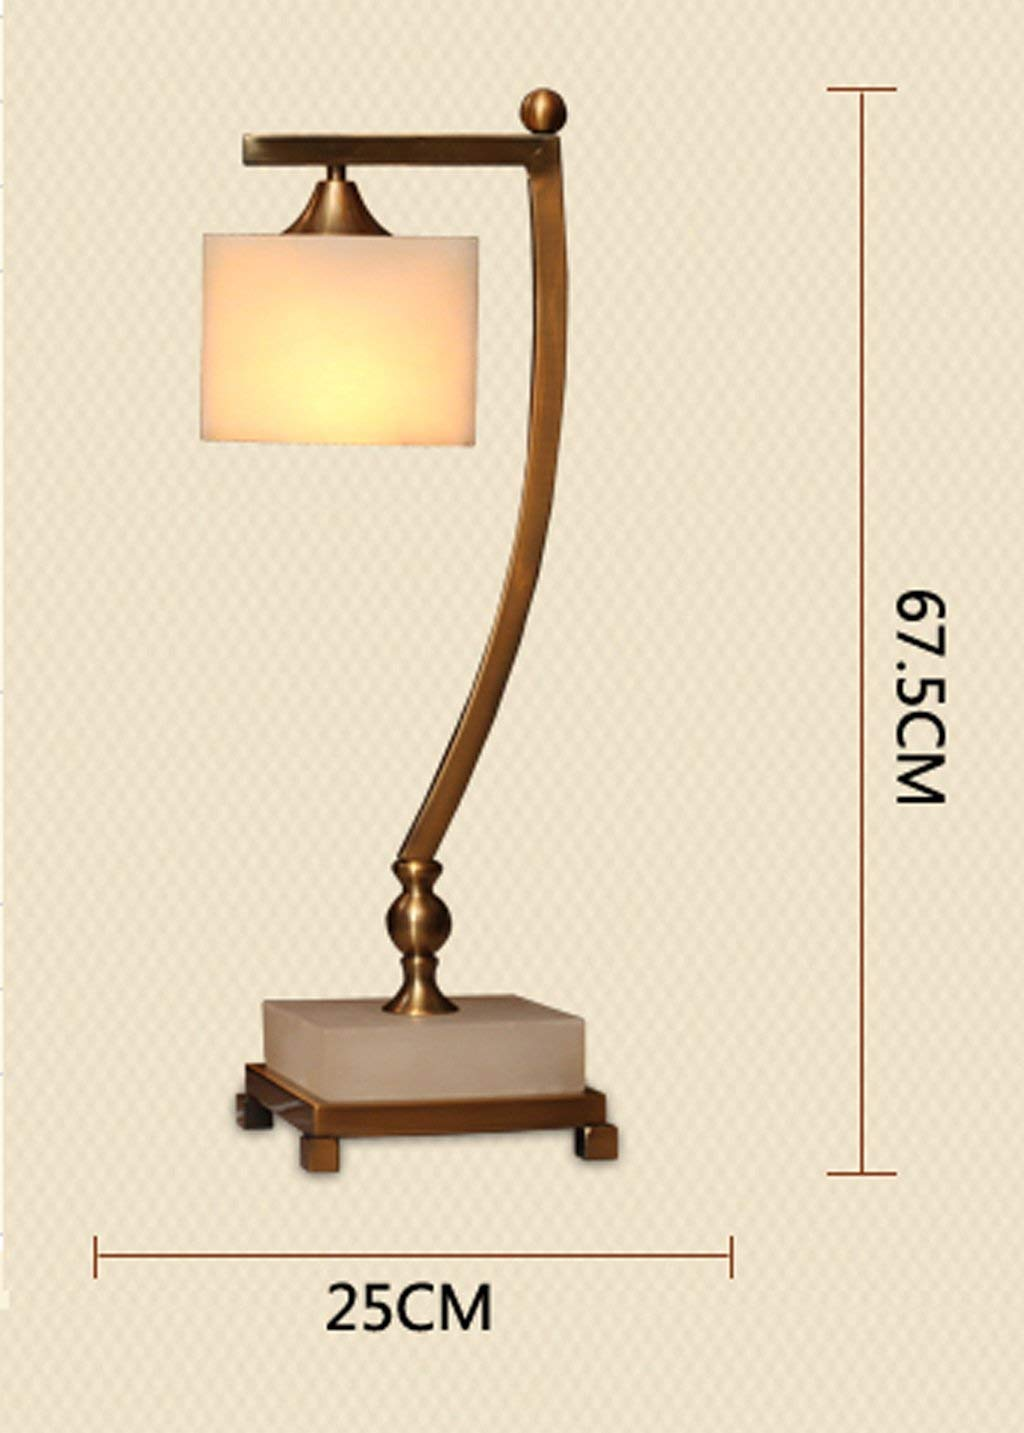 European - Style Lamps Simple Bedroom Living Room Study The Villa Hotel Lobby Soft Decorative Marble Table Lamp Without Light Source Energy Saving and Environmental Protection Modern, ChuanHan